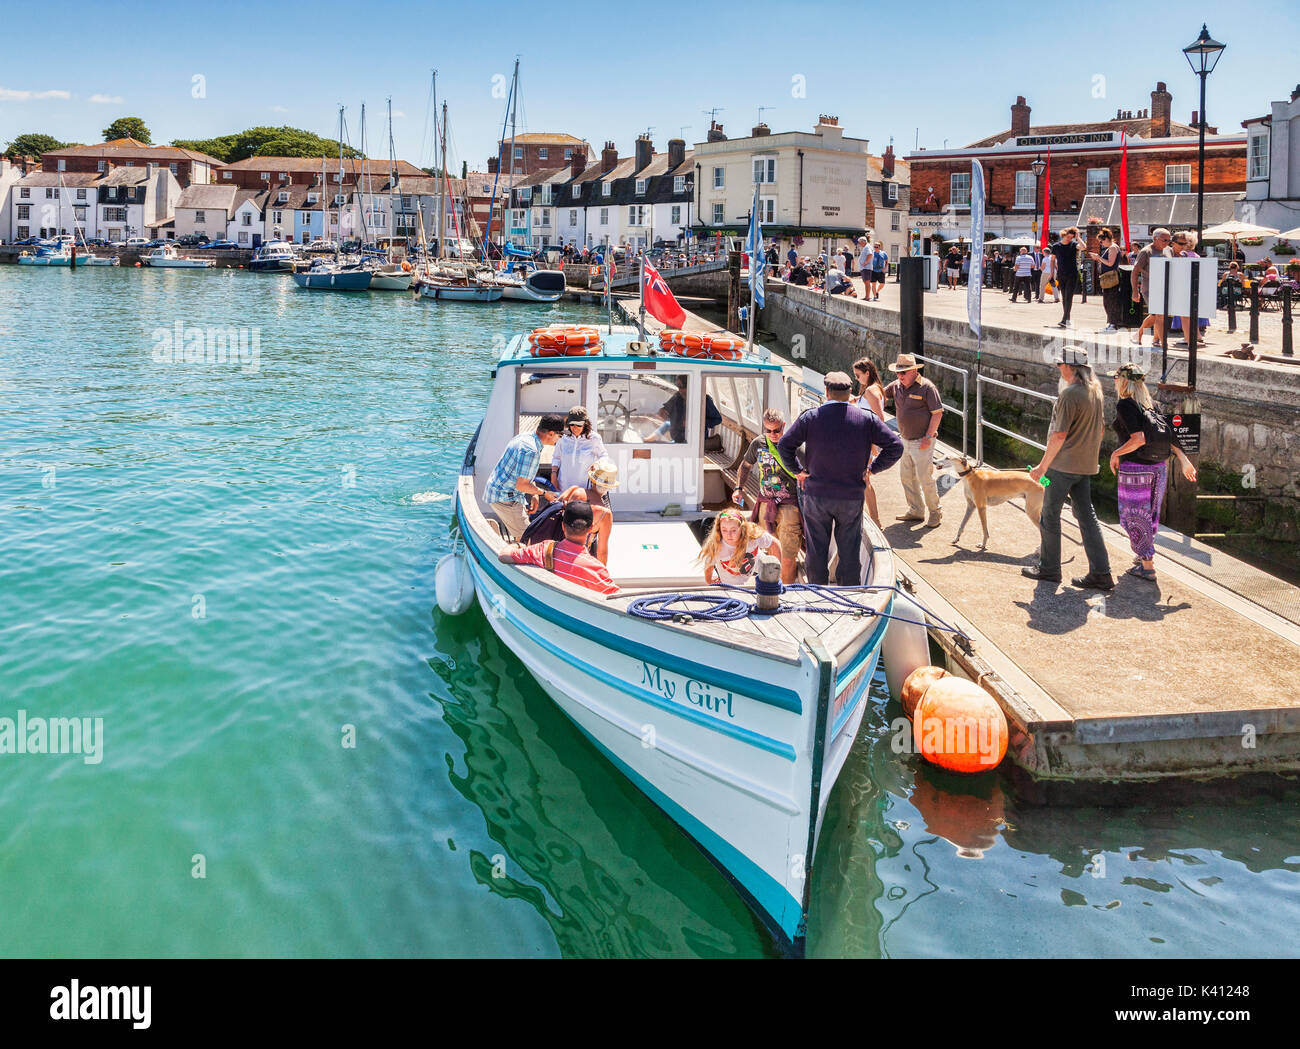 2 July 2017: Weymouth, Dorset, England, UK - Passengers with a dog boarding the pleasure boat My Girl at Weymouth Docks on a sunny summer day. - Stock Image